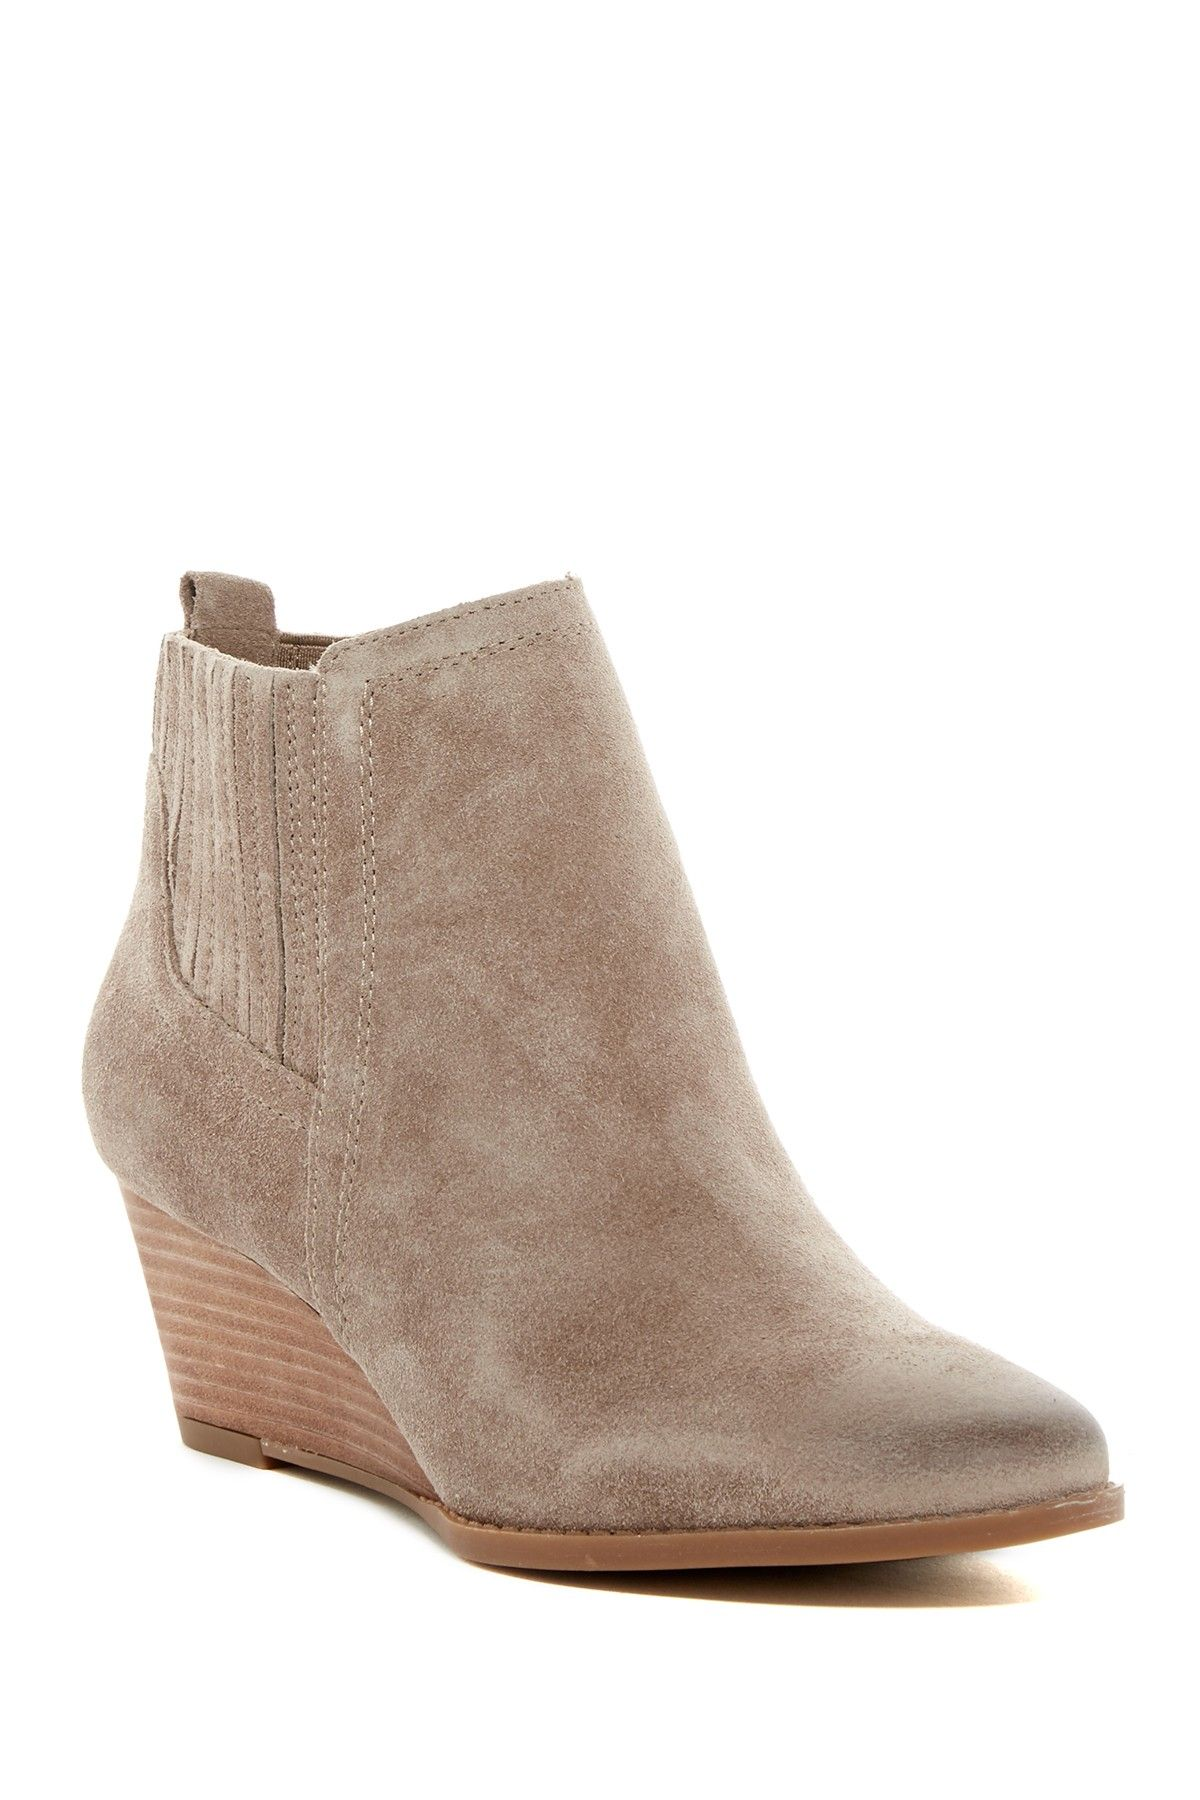 4089ff72219 Wayra Wedge Bootie - Wide Width Available by Franco Sarto on  nordstrom rack